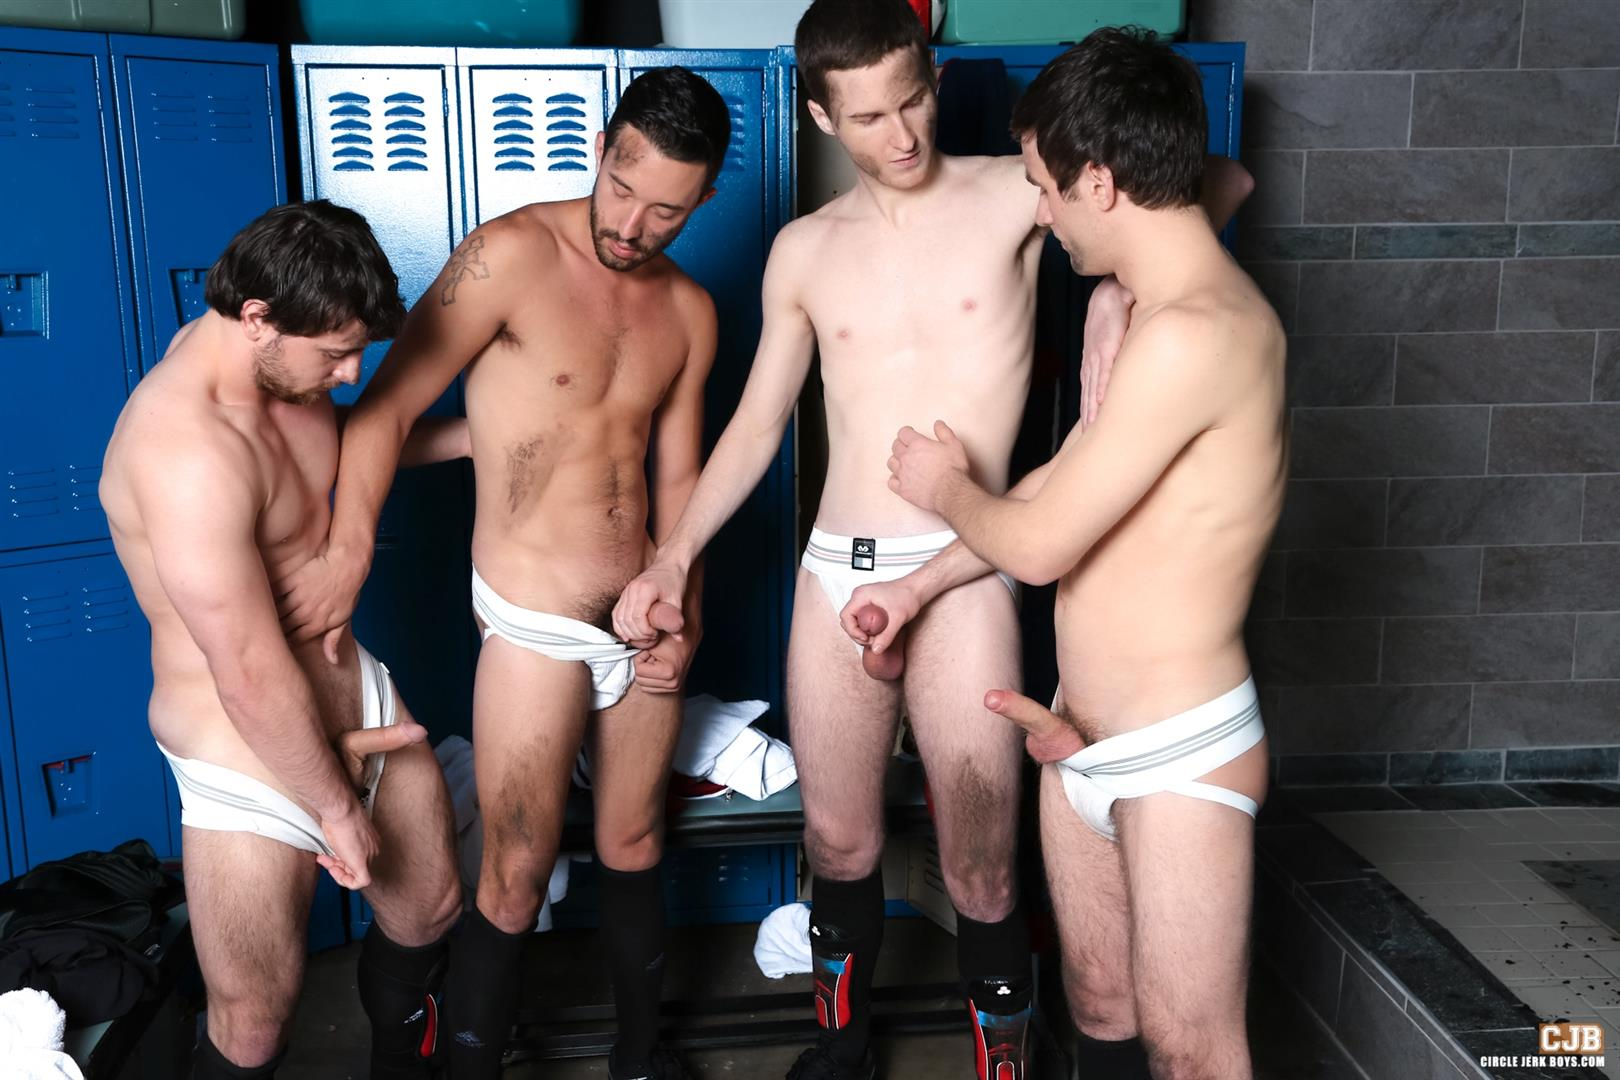 Circle Jerk Boys Andrew Collins and Isaac Hardy and Josh Pierce and Scott Harbor Soccer Guys Sucking Cock Amateur Gay Porn 04